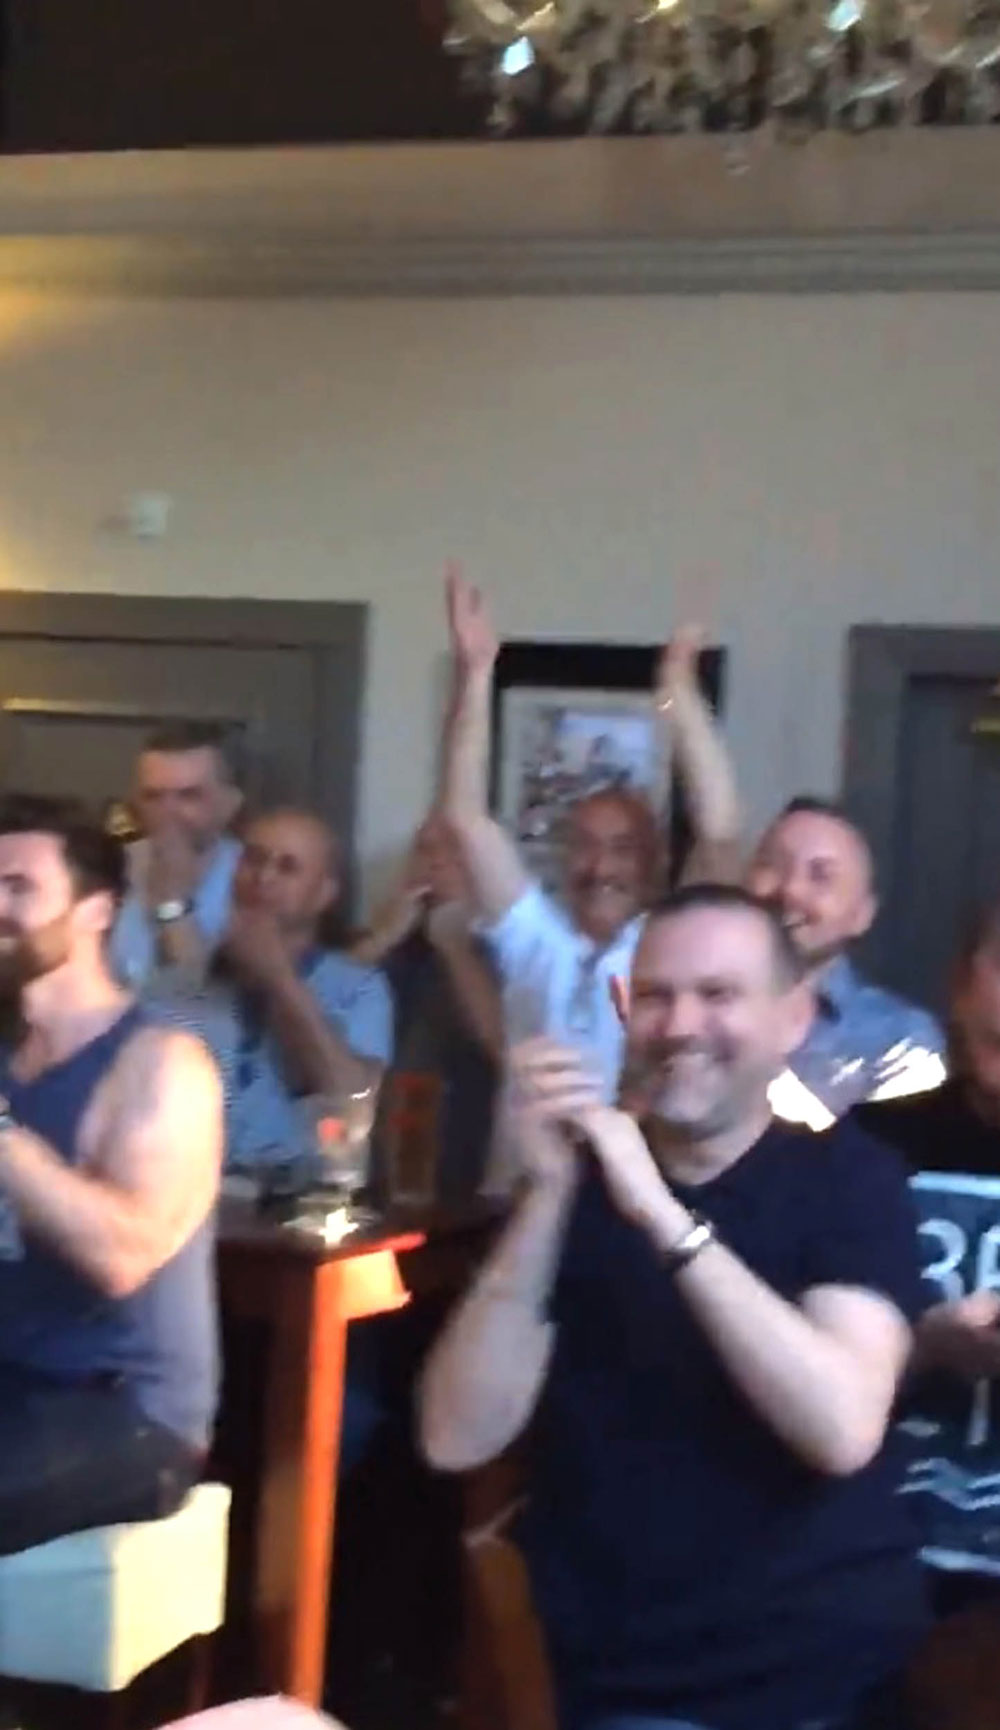 The pub crowd applauded his rendition